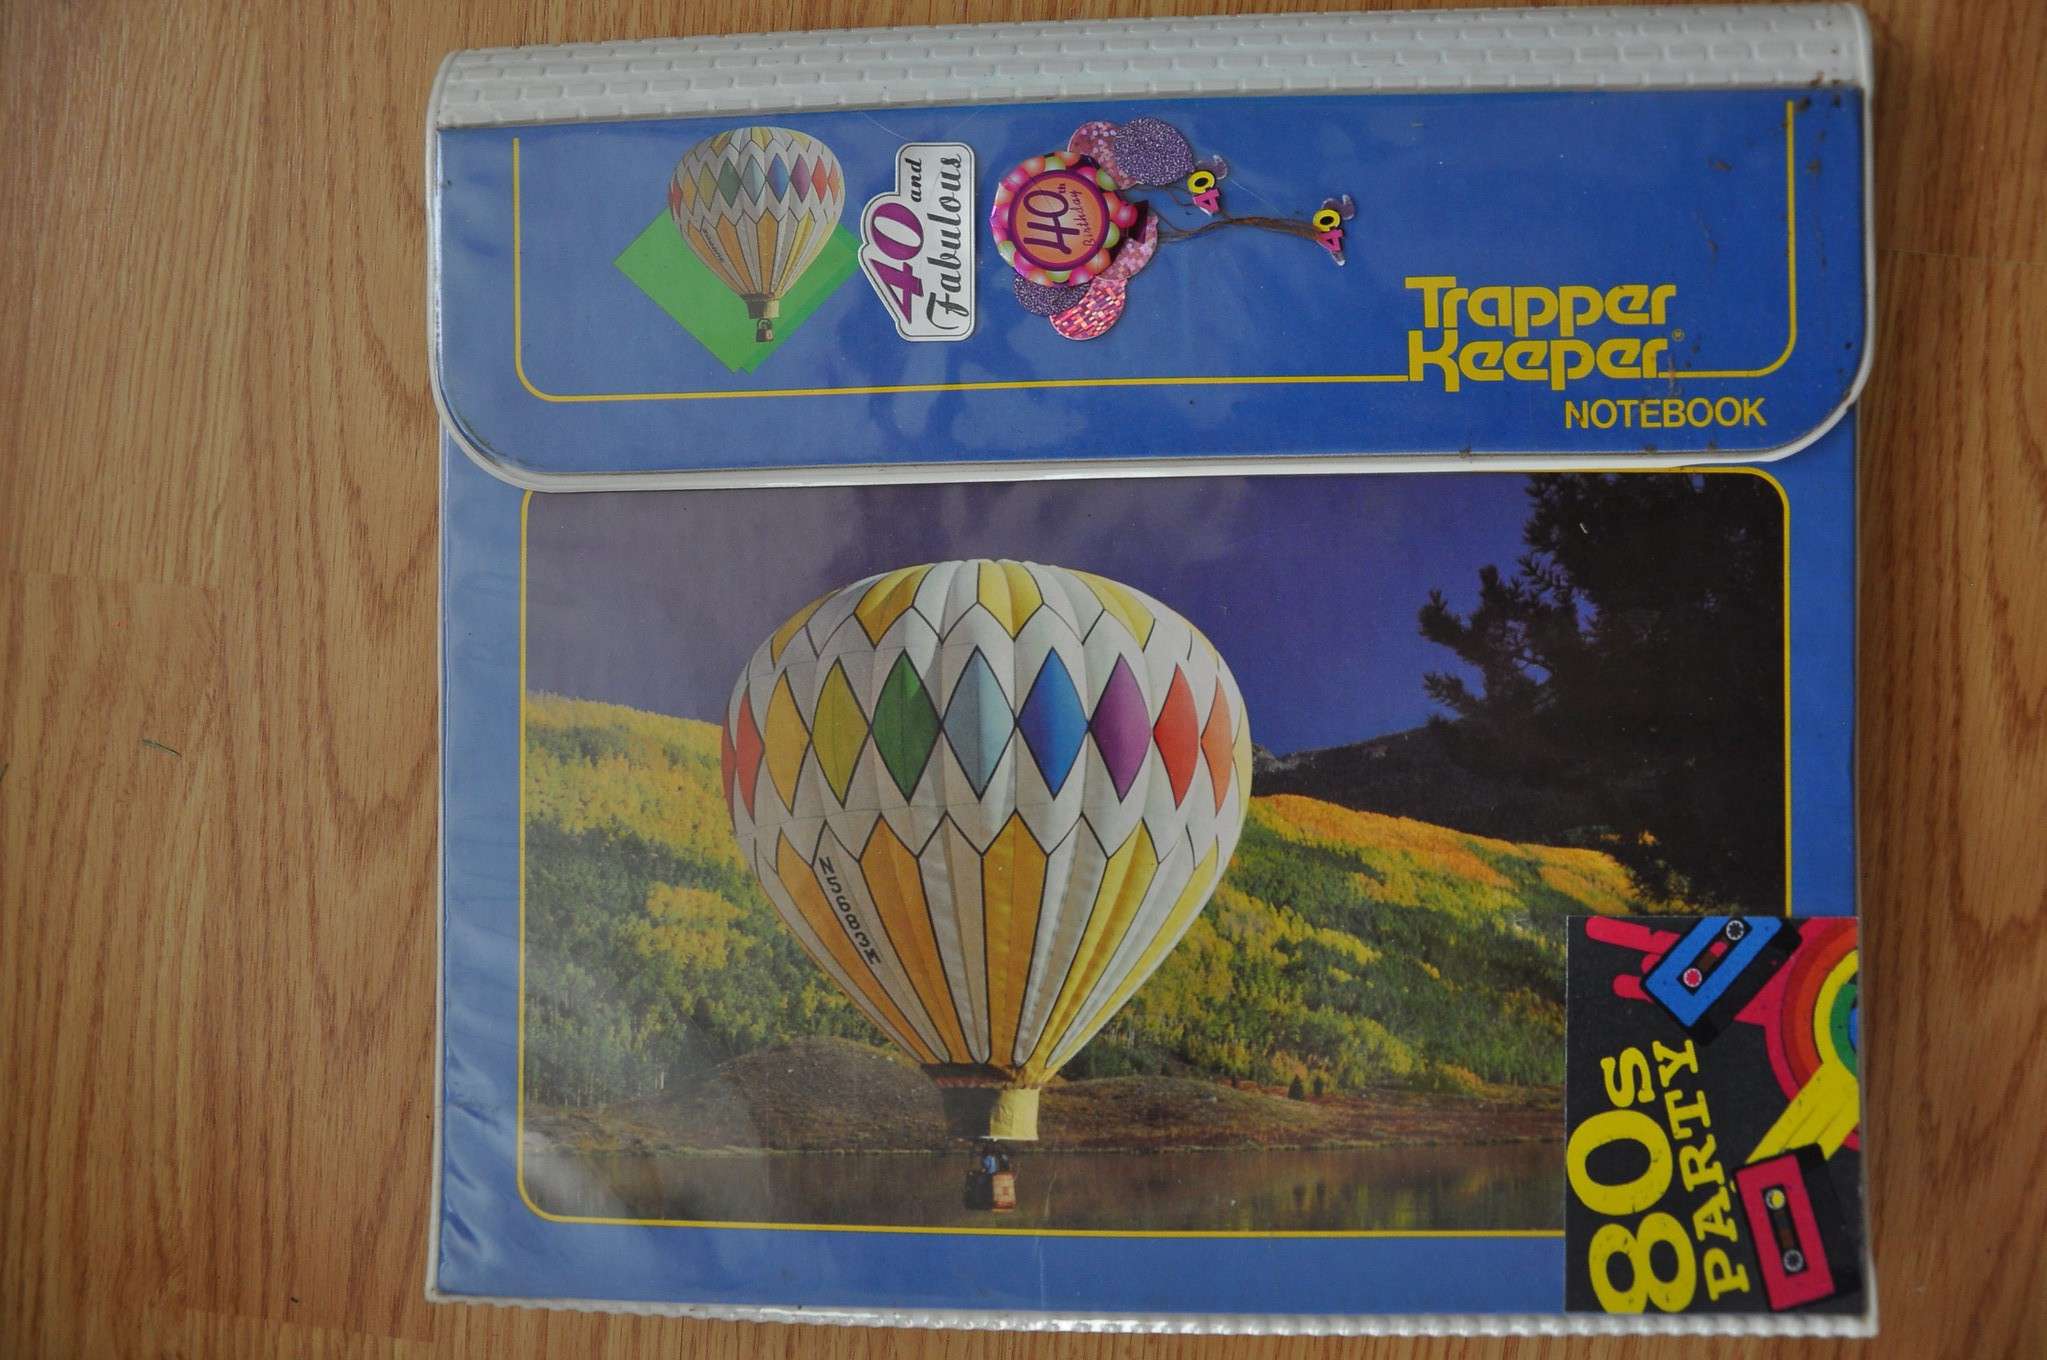 Blue Trapper Keeper notebook with hot air balloon and cassette tape with 80s party in bottom right corner.